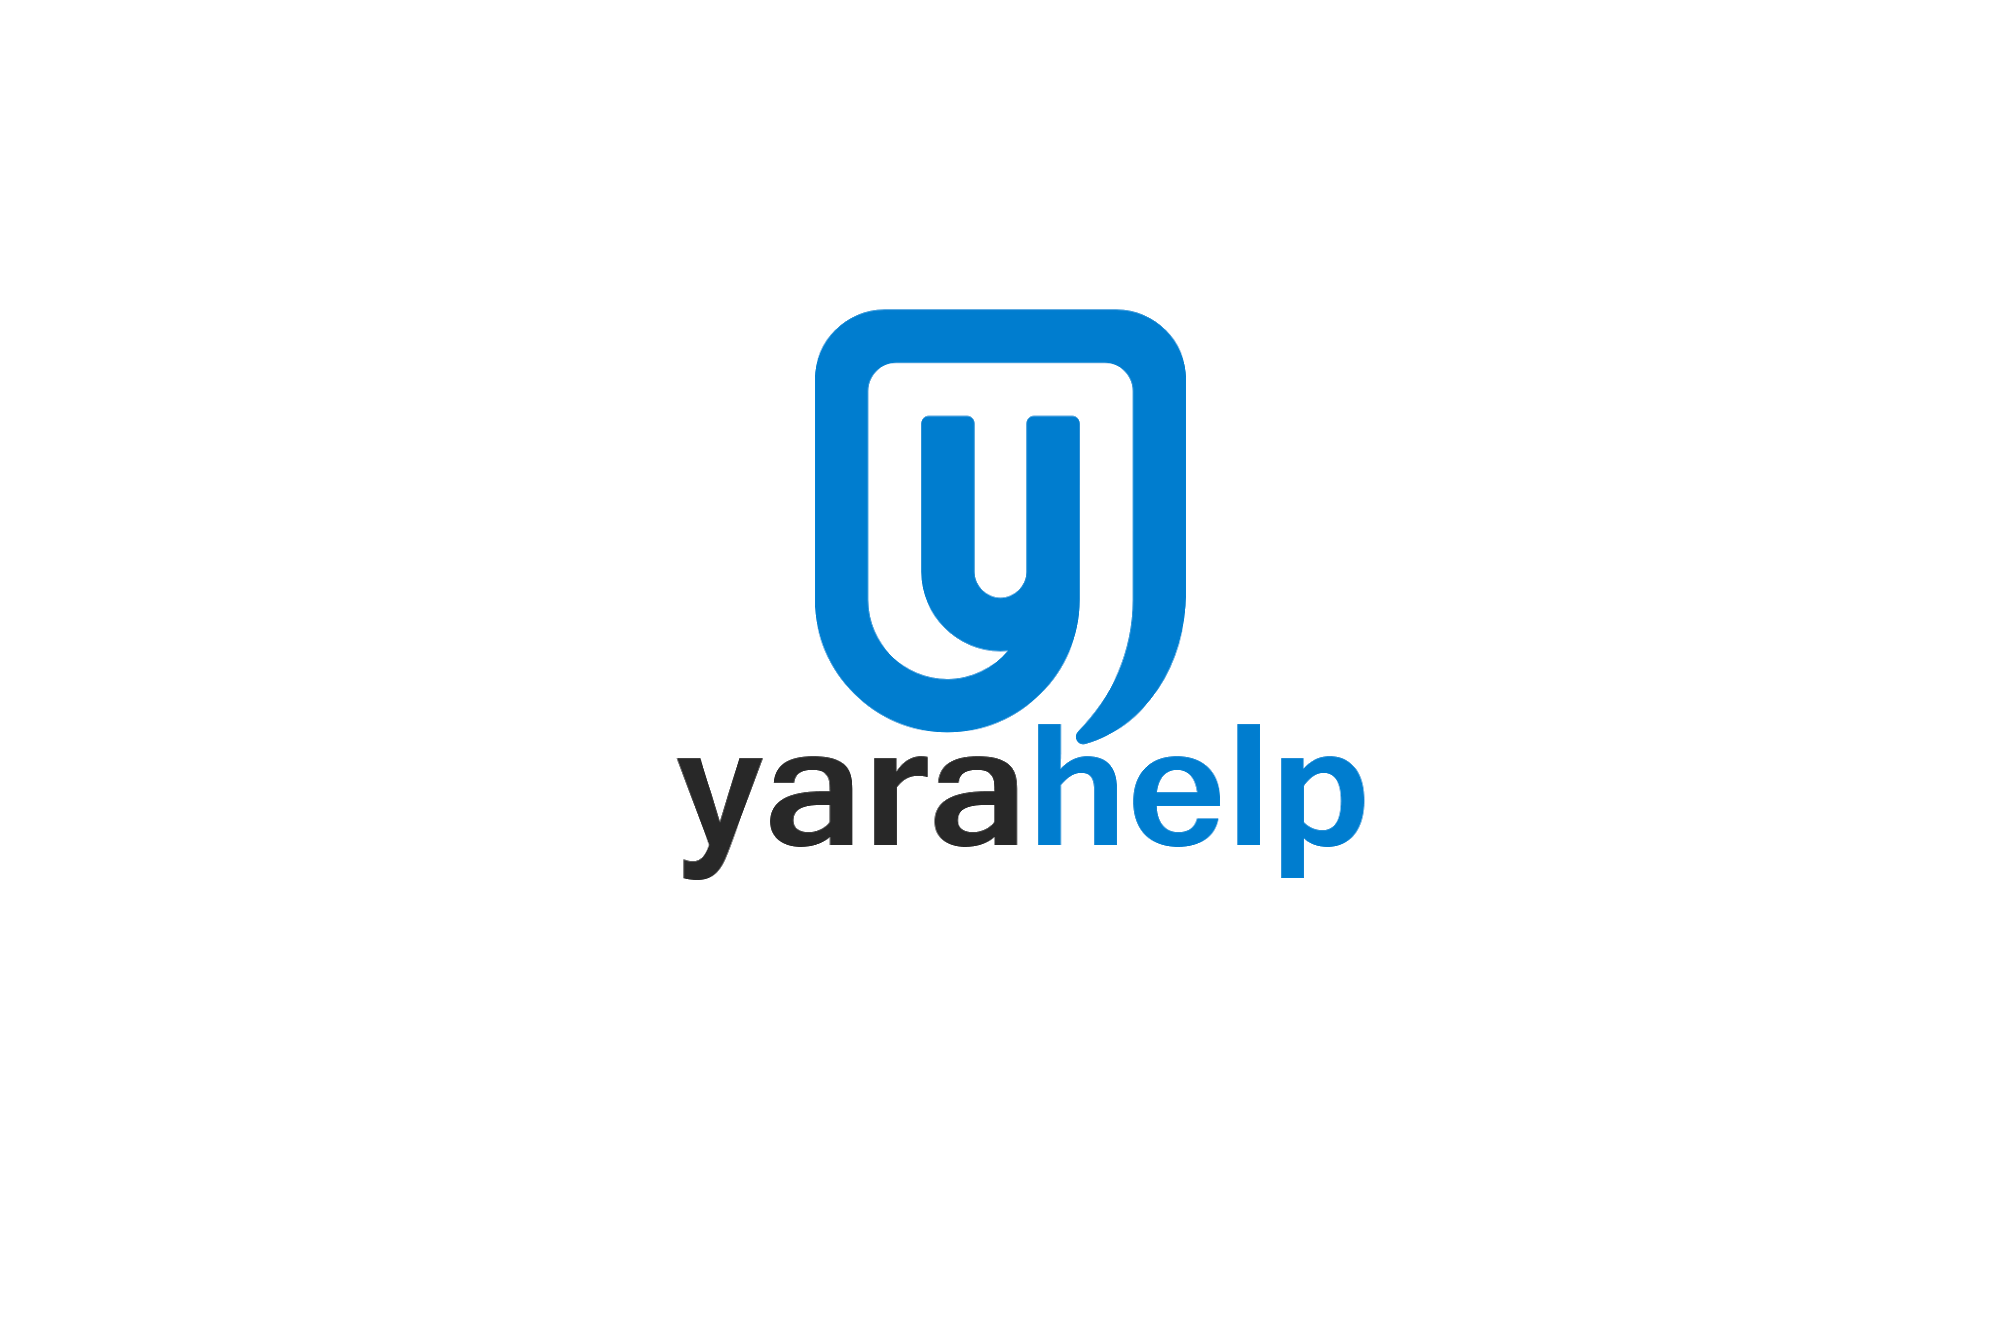 YaraHelp Web Services– Full Service Digital Agency